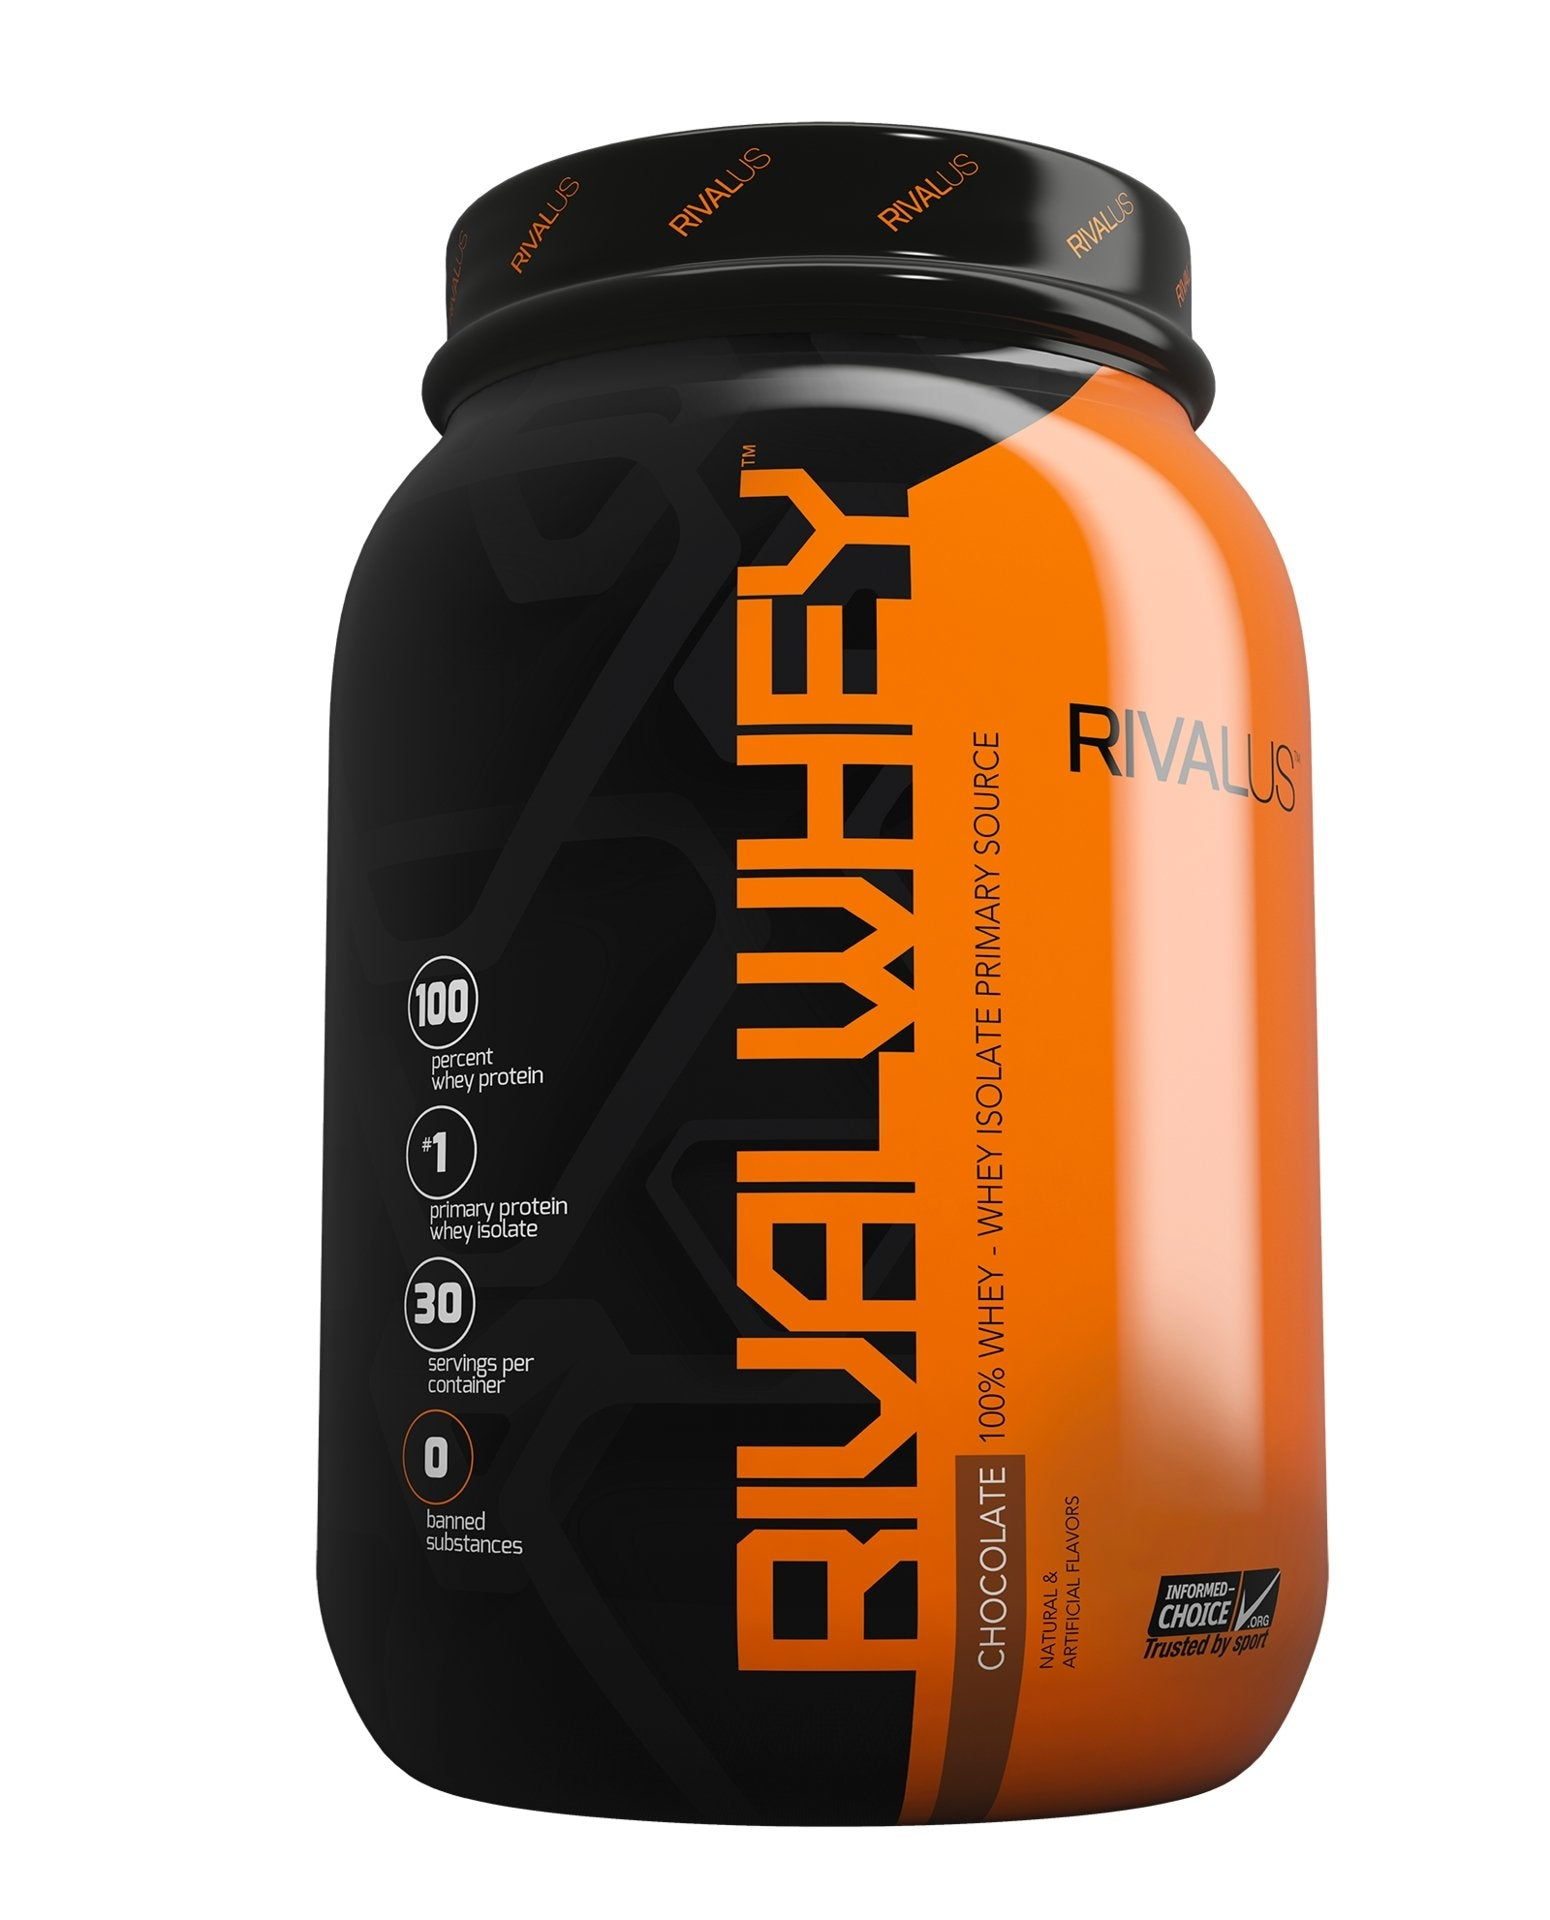 RIVALWHEY | RIVALUS - Tassie Supps - PROTEIN - DAIRY BASED